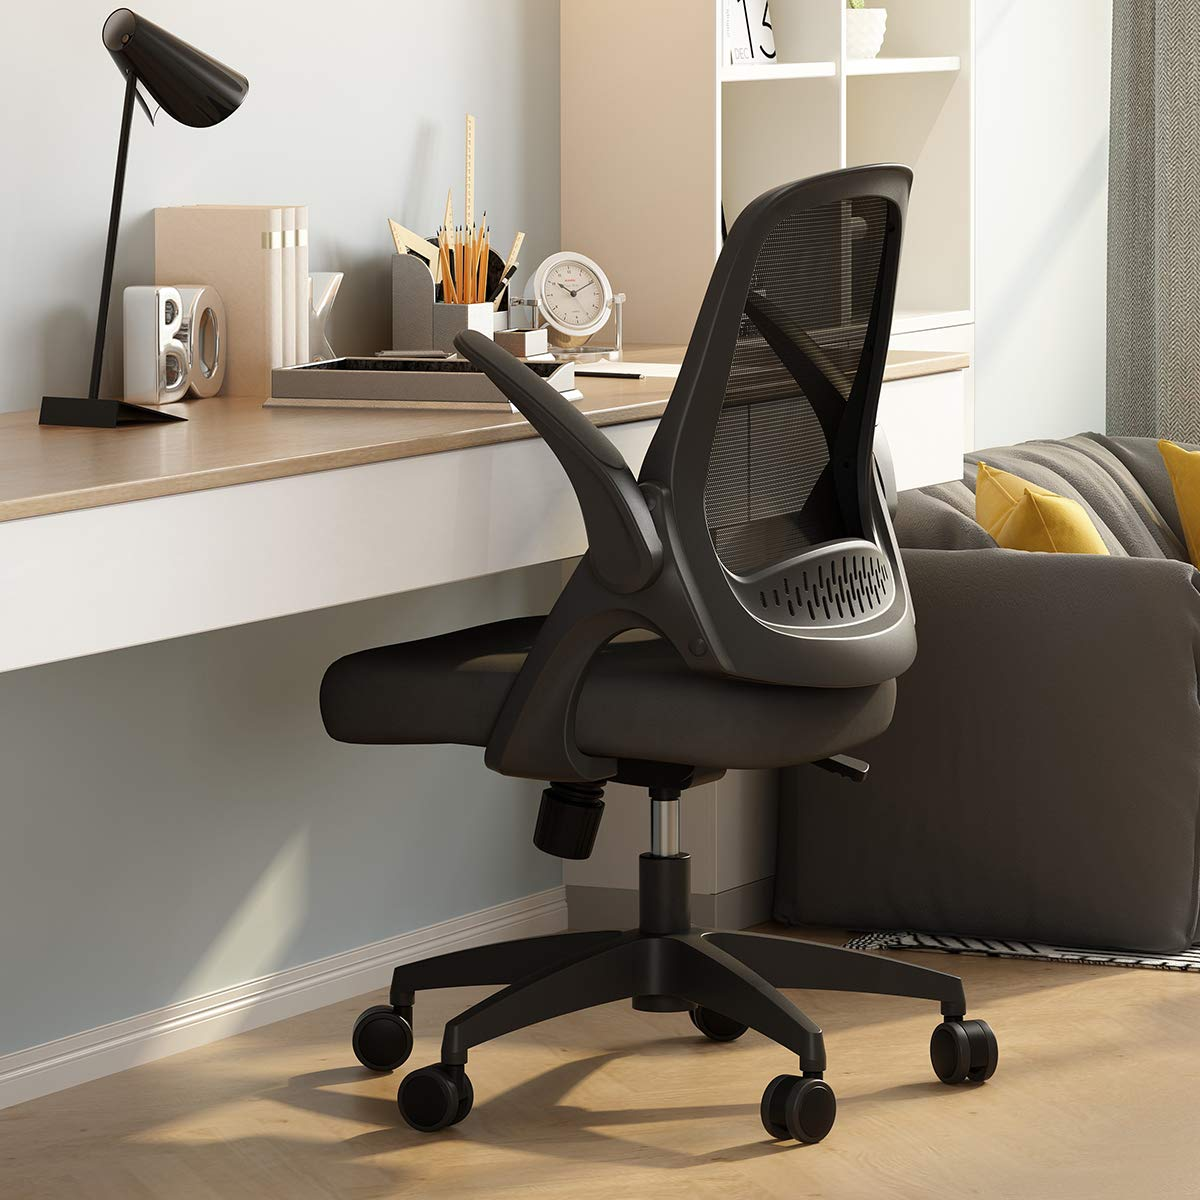 Hbada Modern Desk Comfort Swivel Home Office Task Chair with Flip-up Arms and Adjustable Height, Black by Hbada